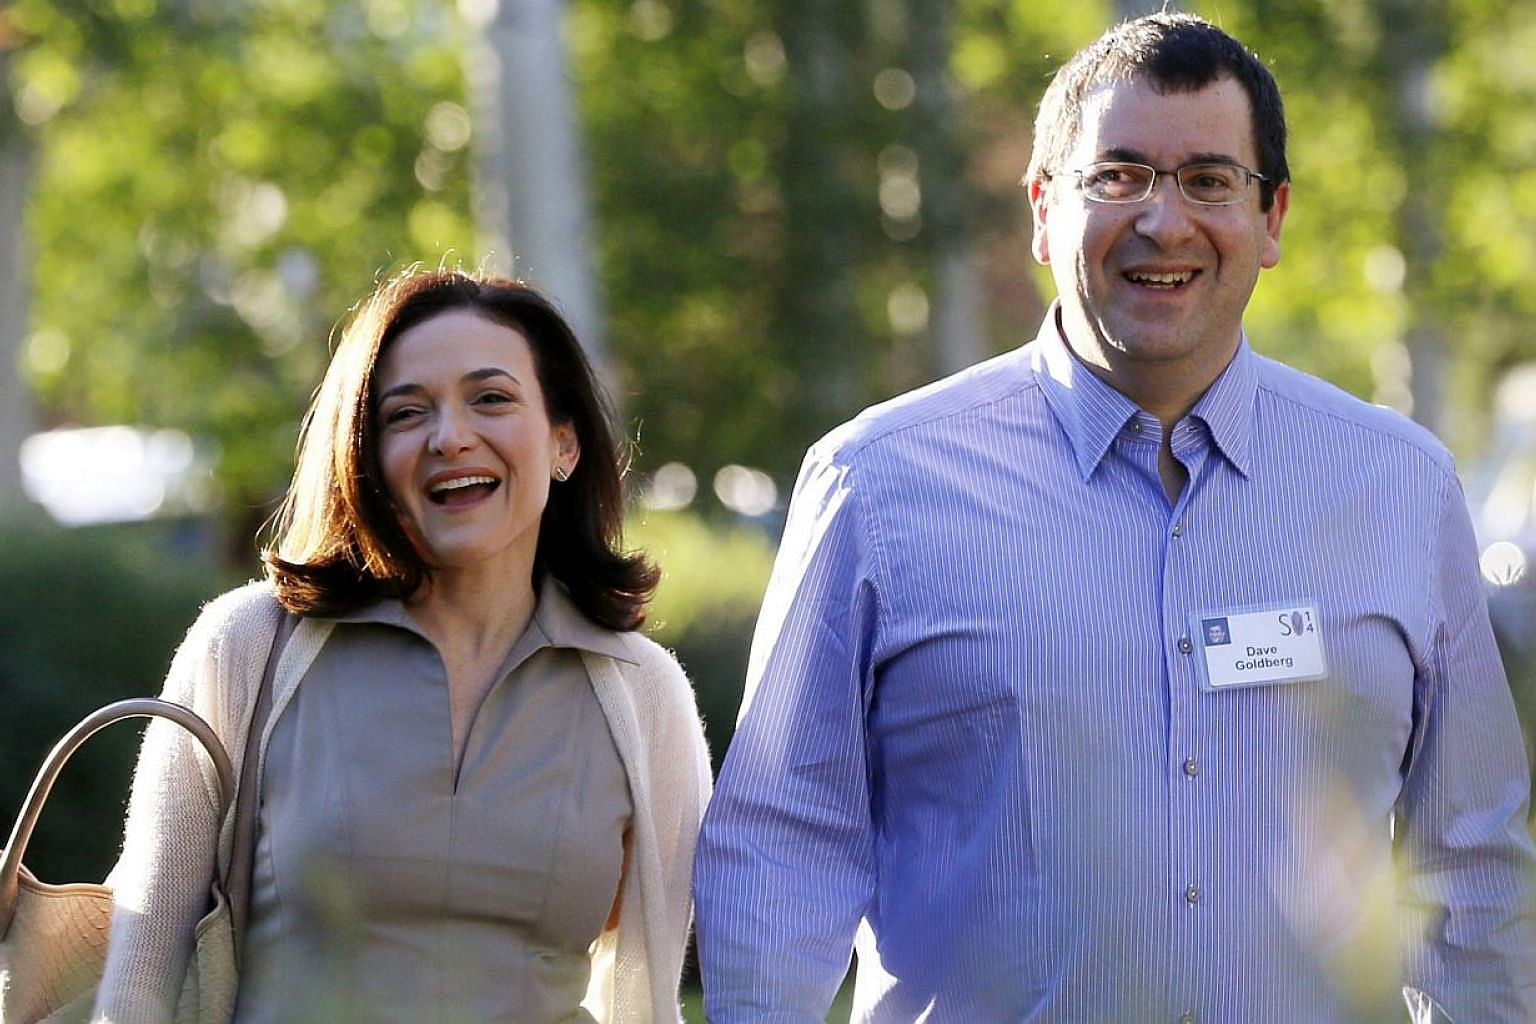 Chief Operating Officer (COO) of Facebook Sheryl Sandberg (left), with her husband David Goldberg, CEO of SurveyMonkey, at a media conference in Sun Valley, Idaho on July 9, 2014. -- PHOTO: REUTERS